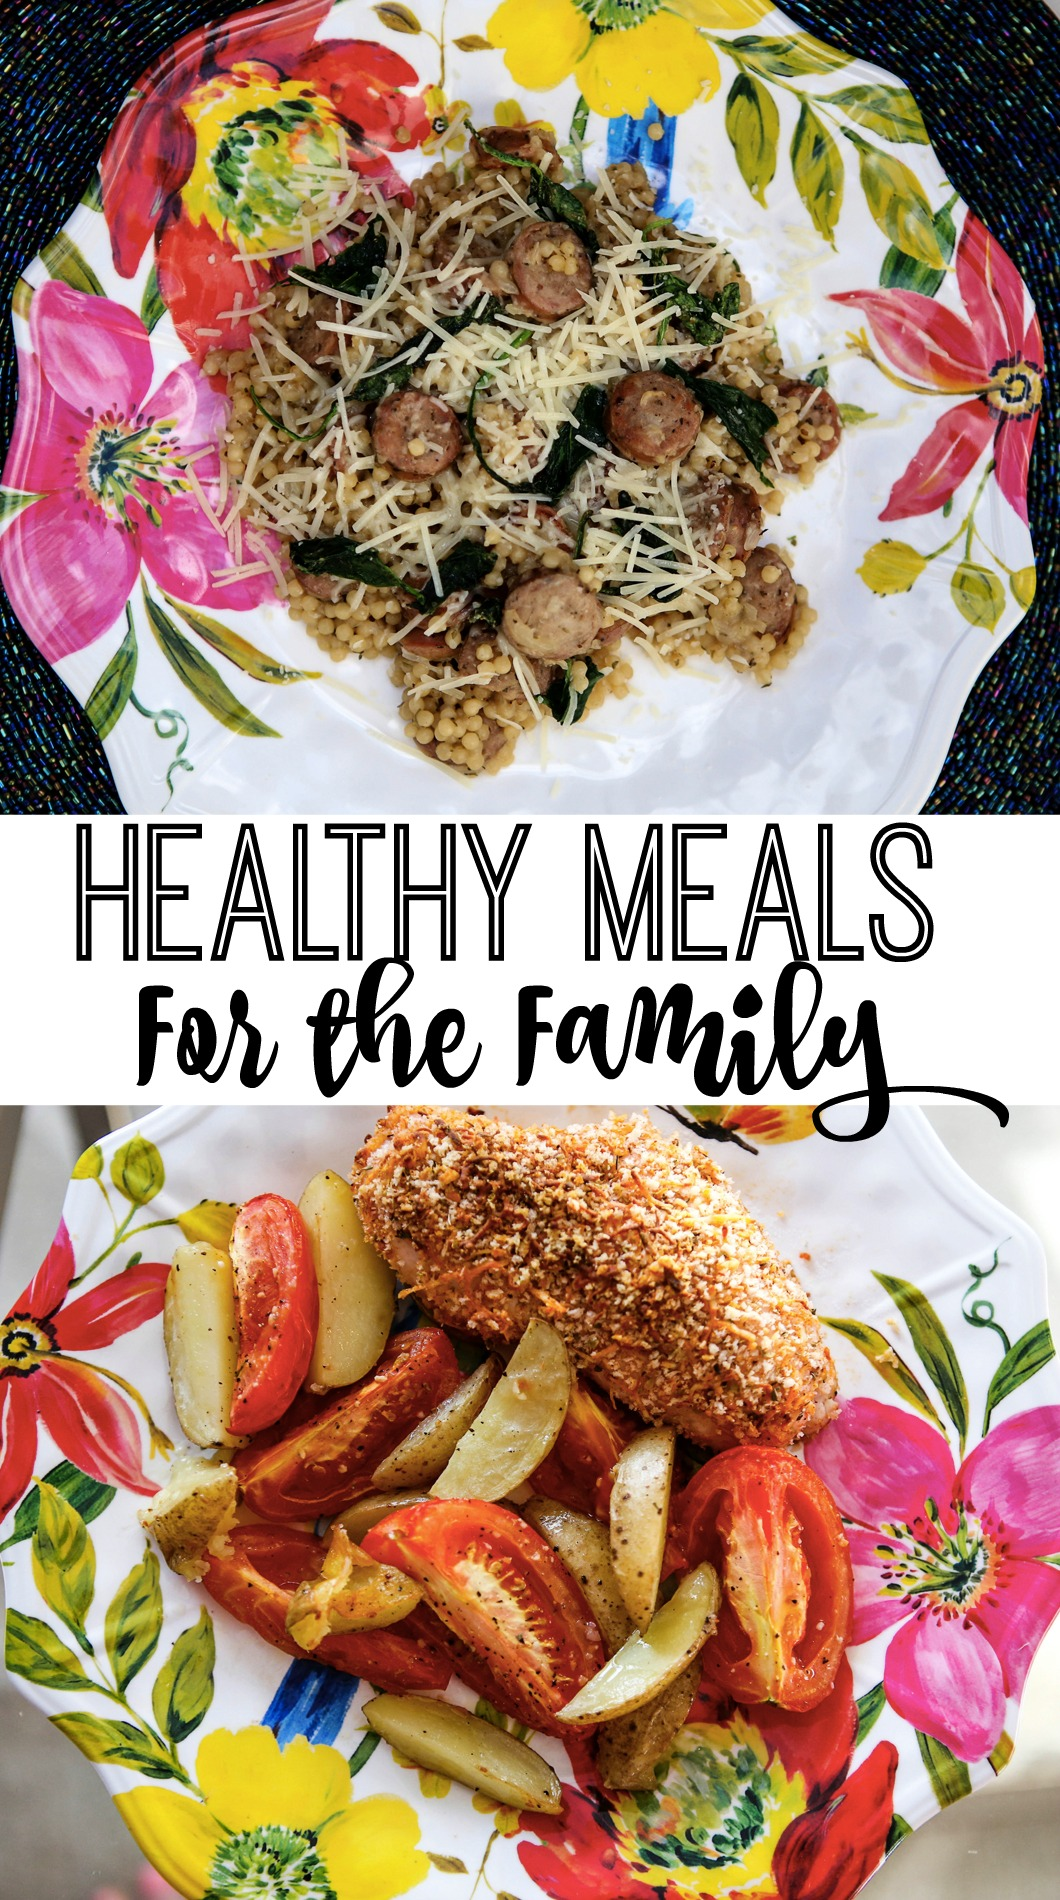 healthymealsforthefamily